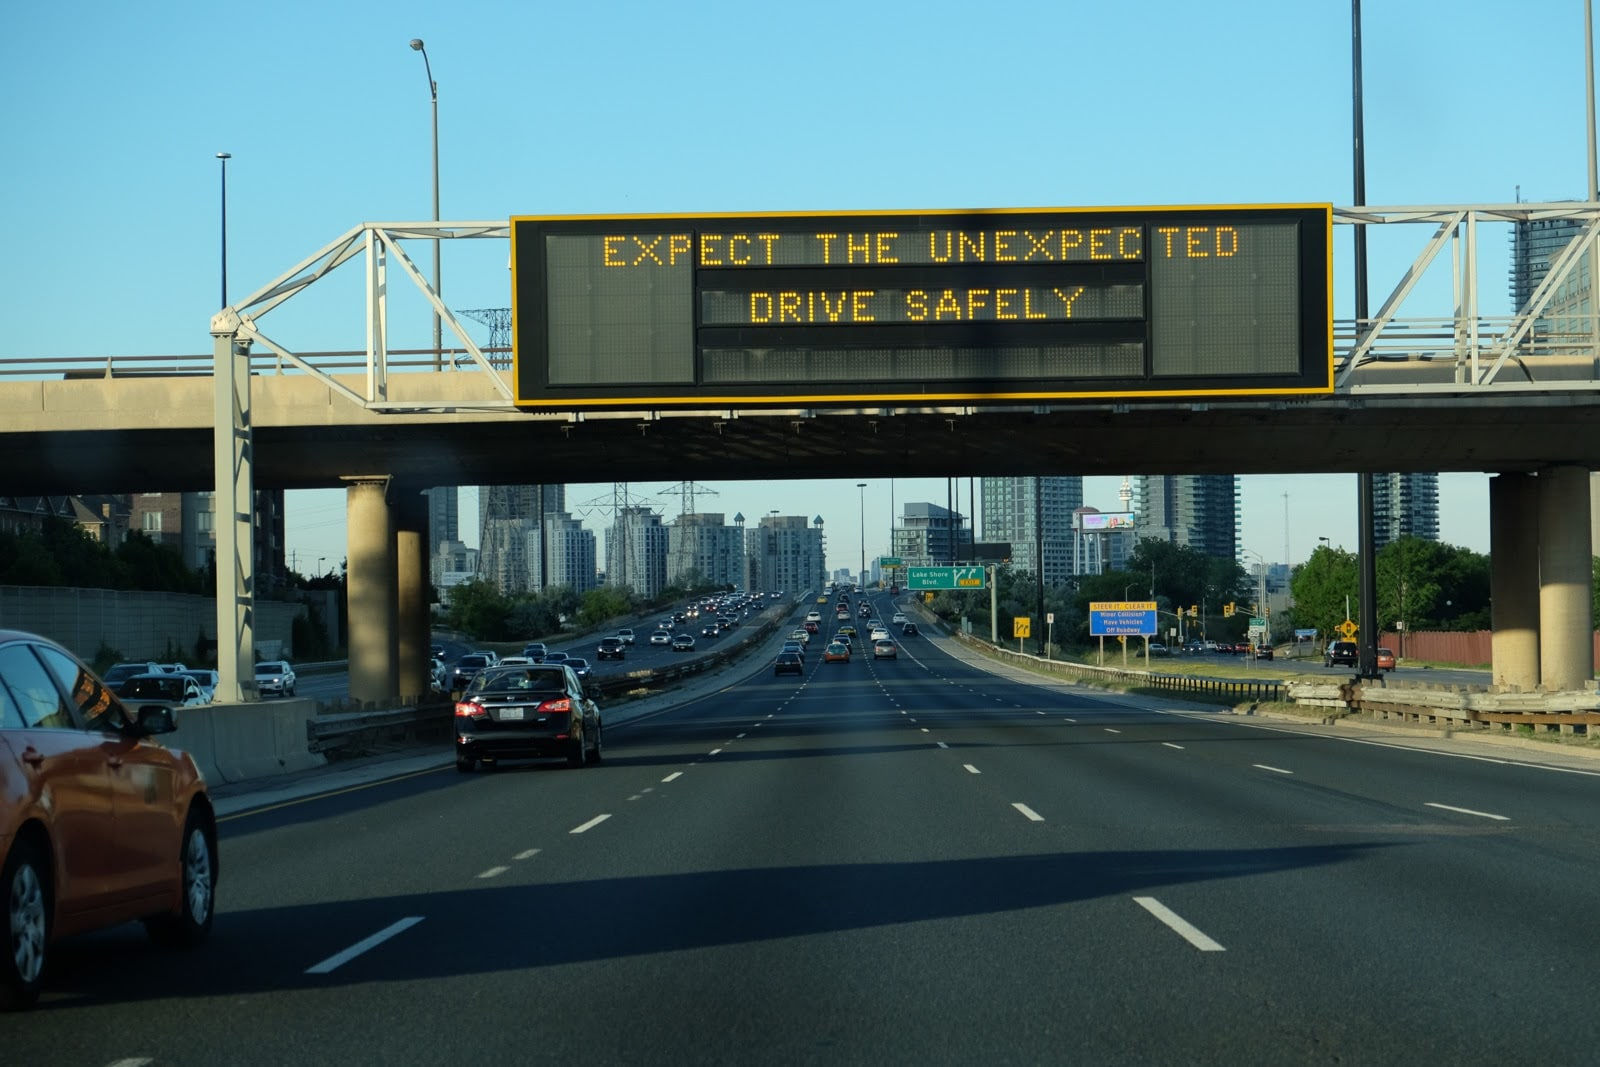 Drive test in Ontario - expect the unexpected